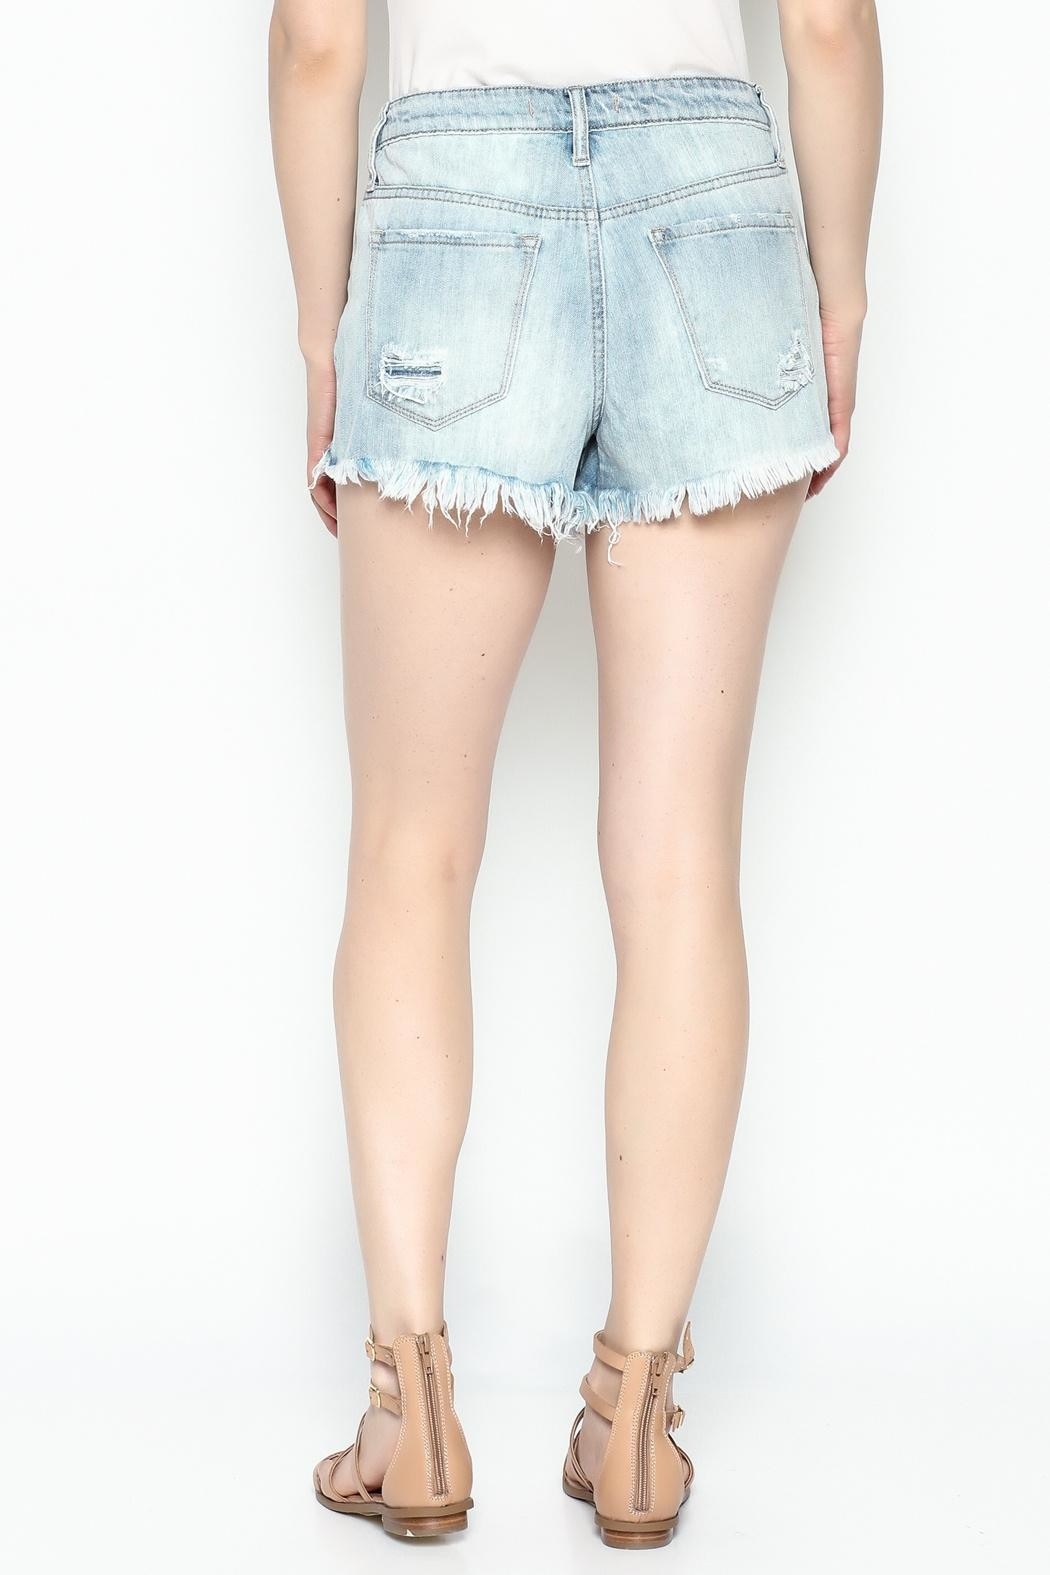 Klique B Denim Cutoff Shorts - Back Cropped Image